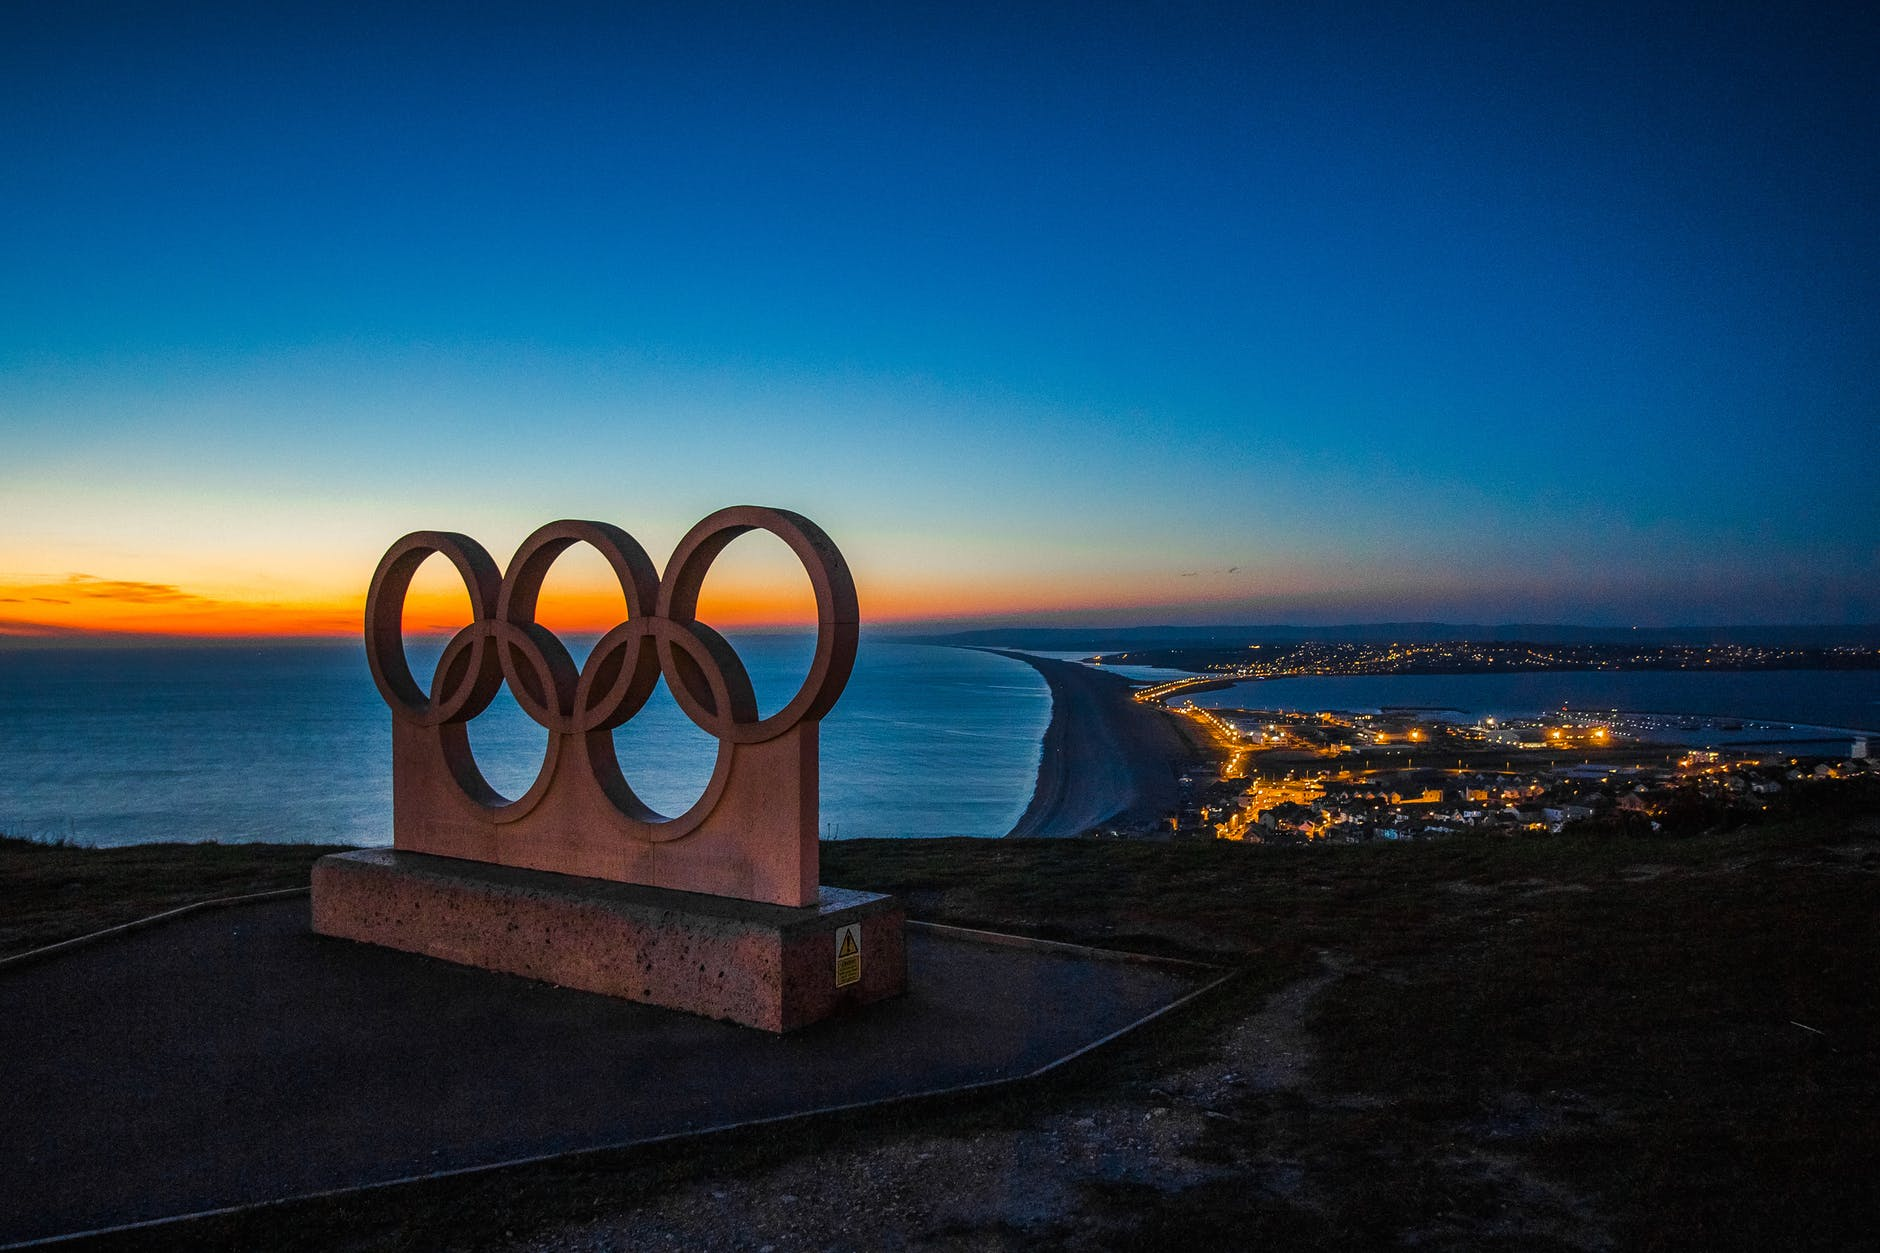 5 Olympic Rings with a lit up city in the background